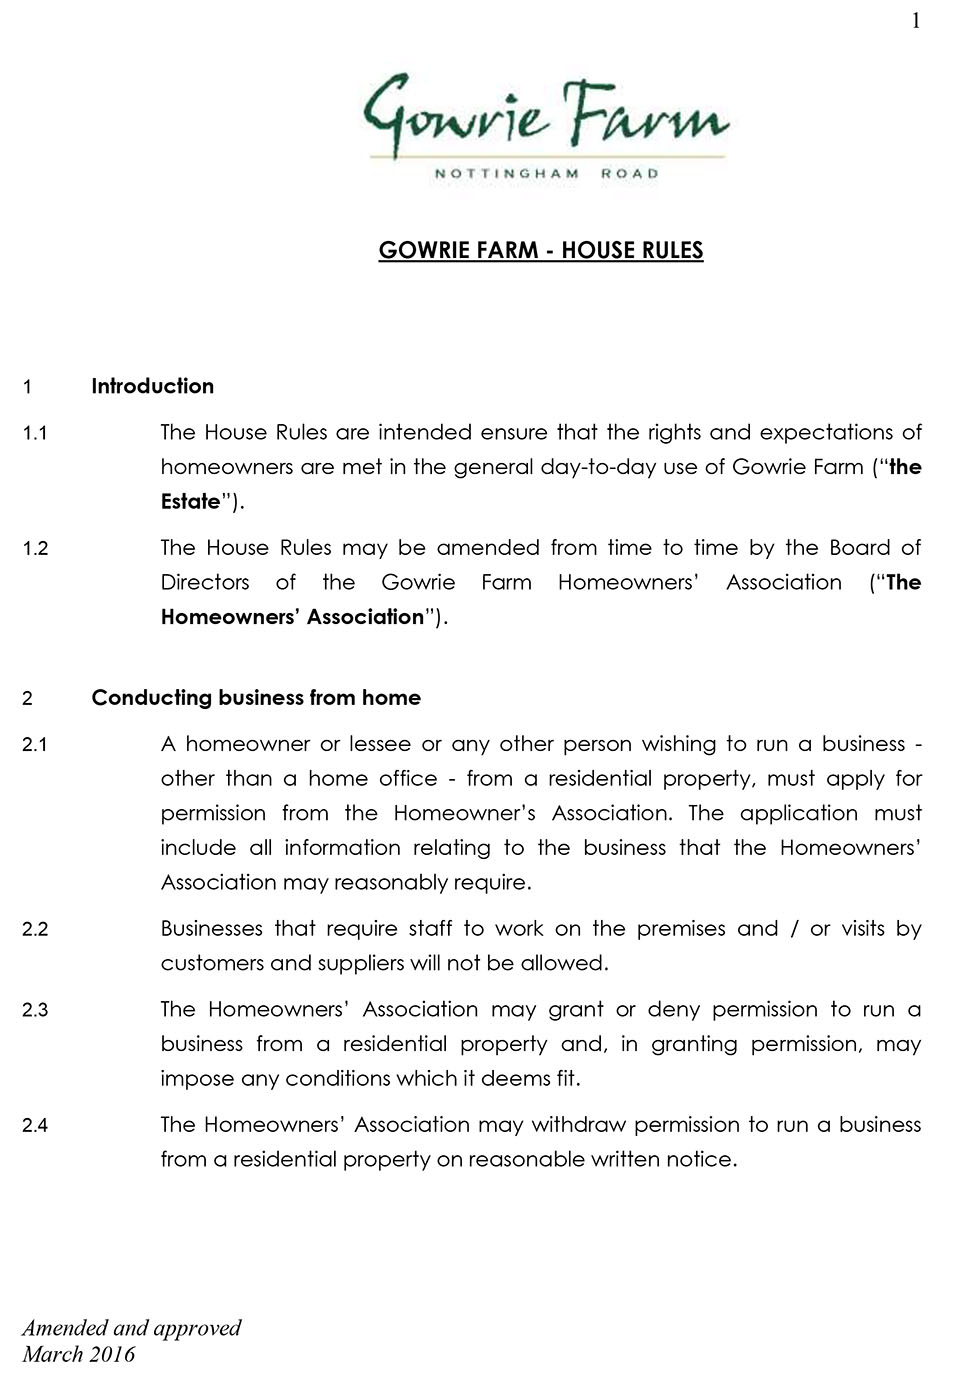 Gowrie-Farm-estate_hoa_-House-Rules-Final-30.03.2016